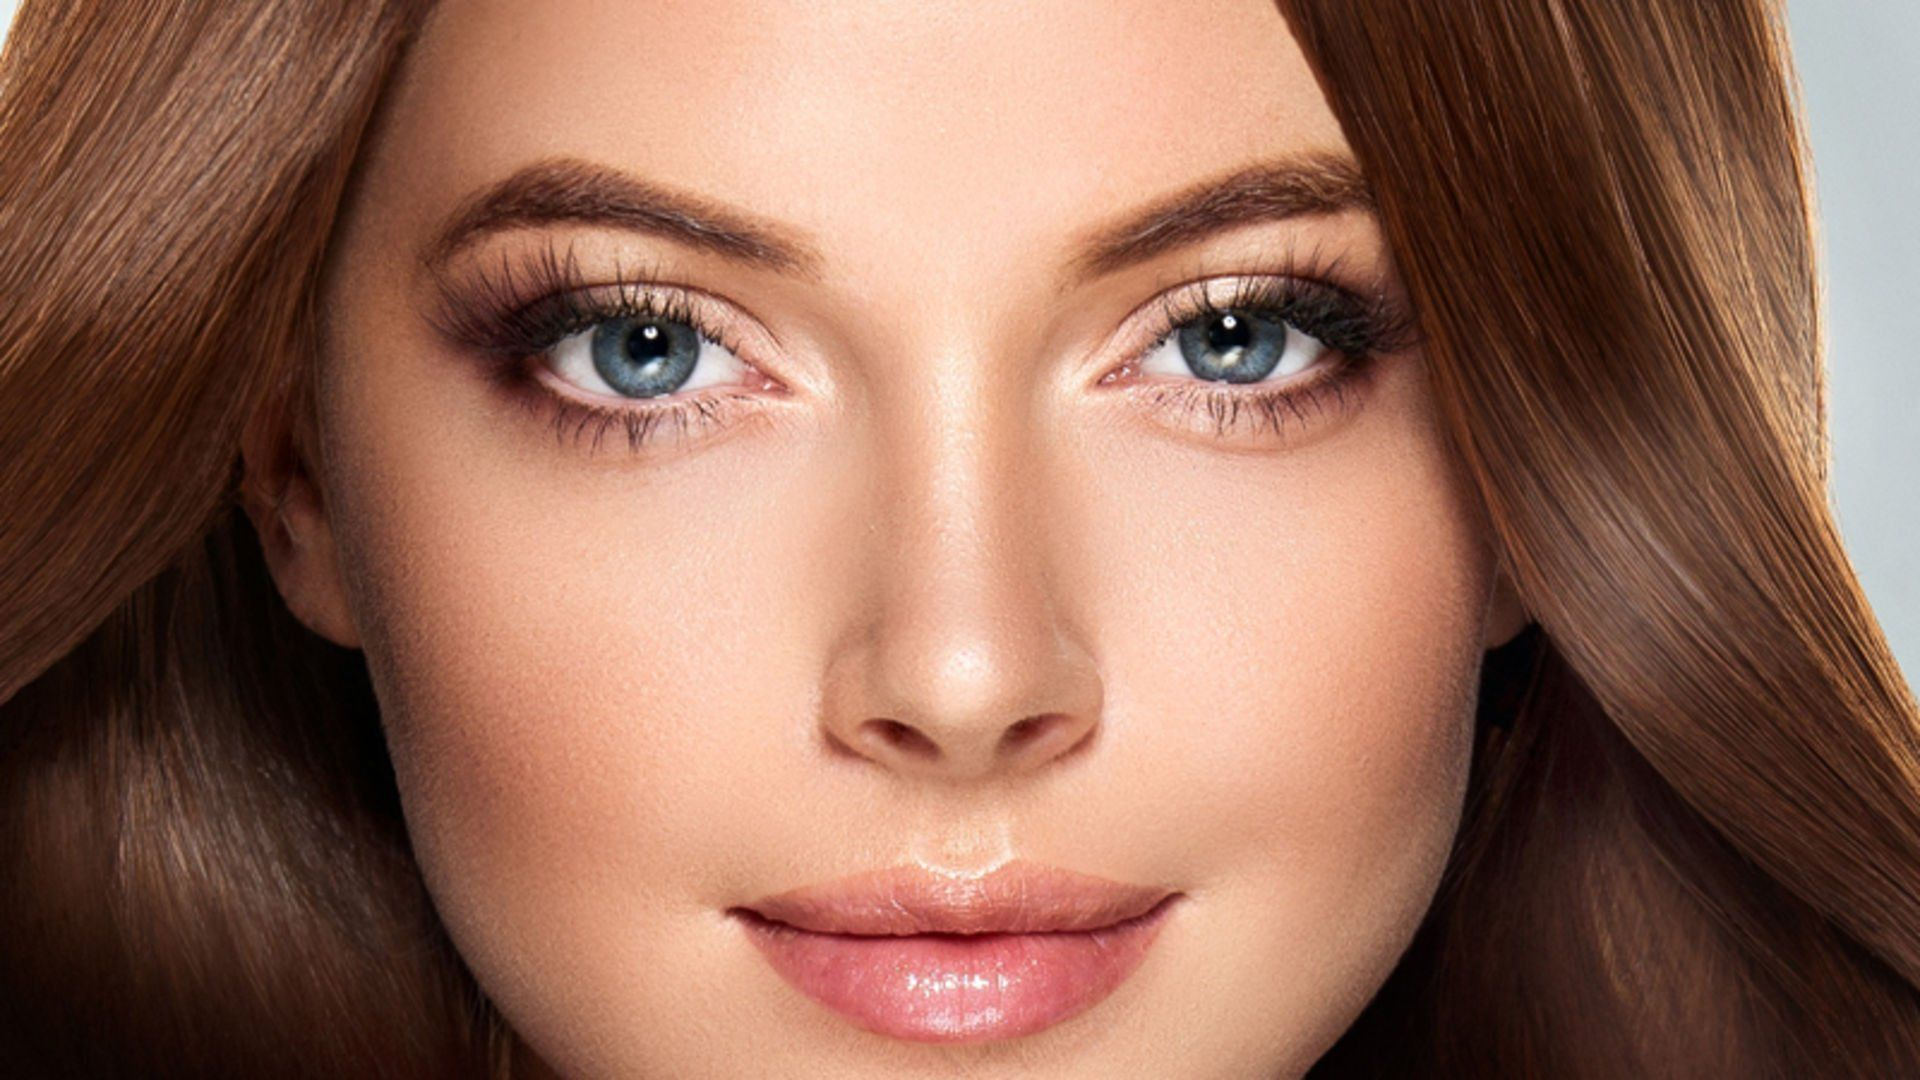 Arch 2 Arch Spa and Threading Salon are the leading